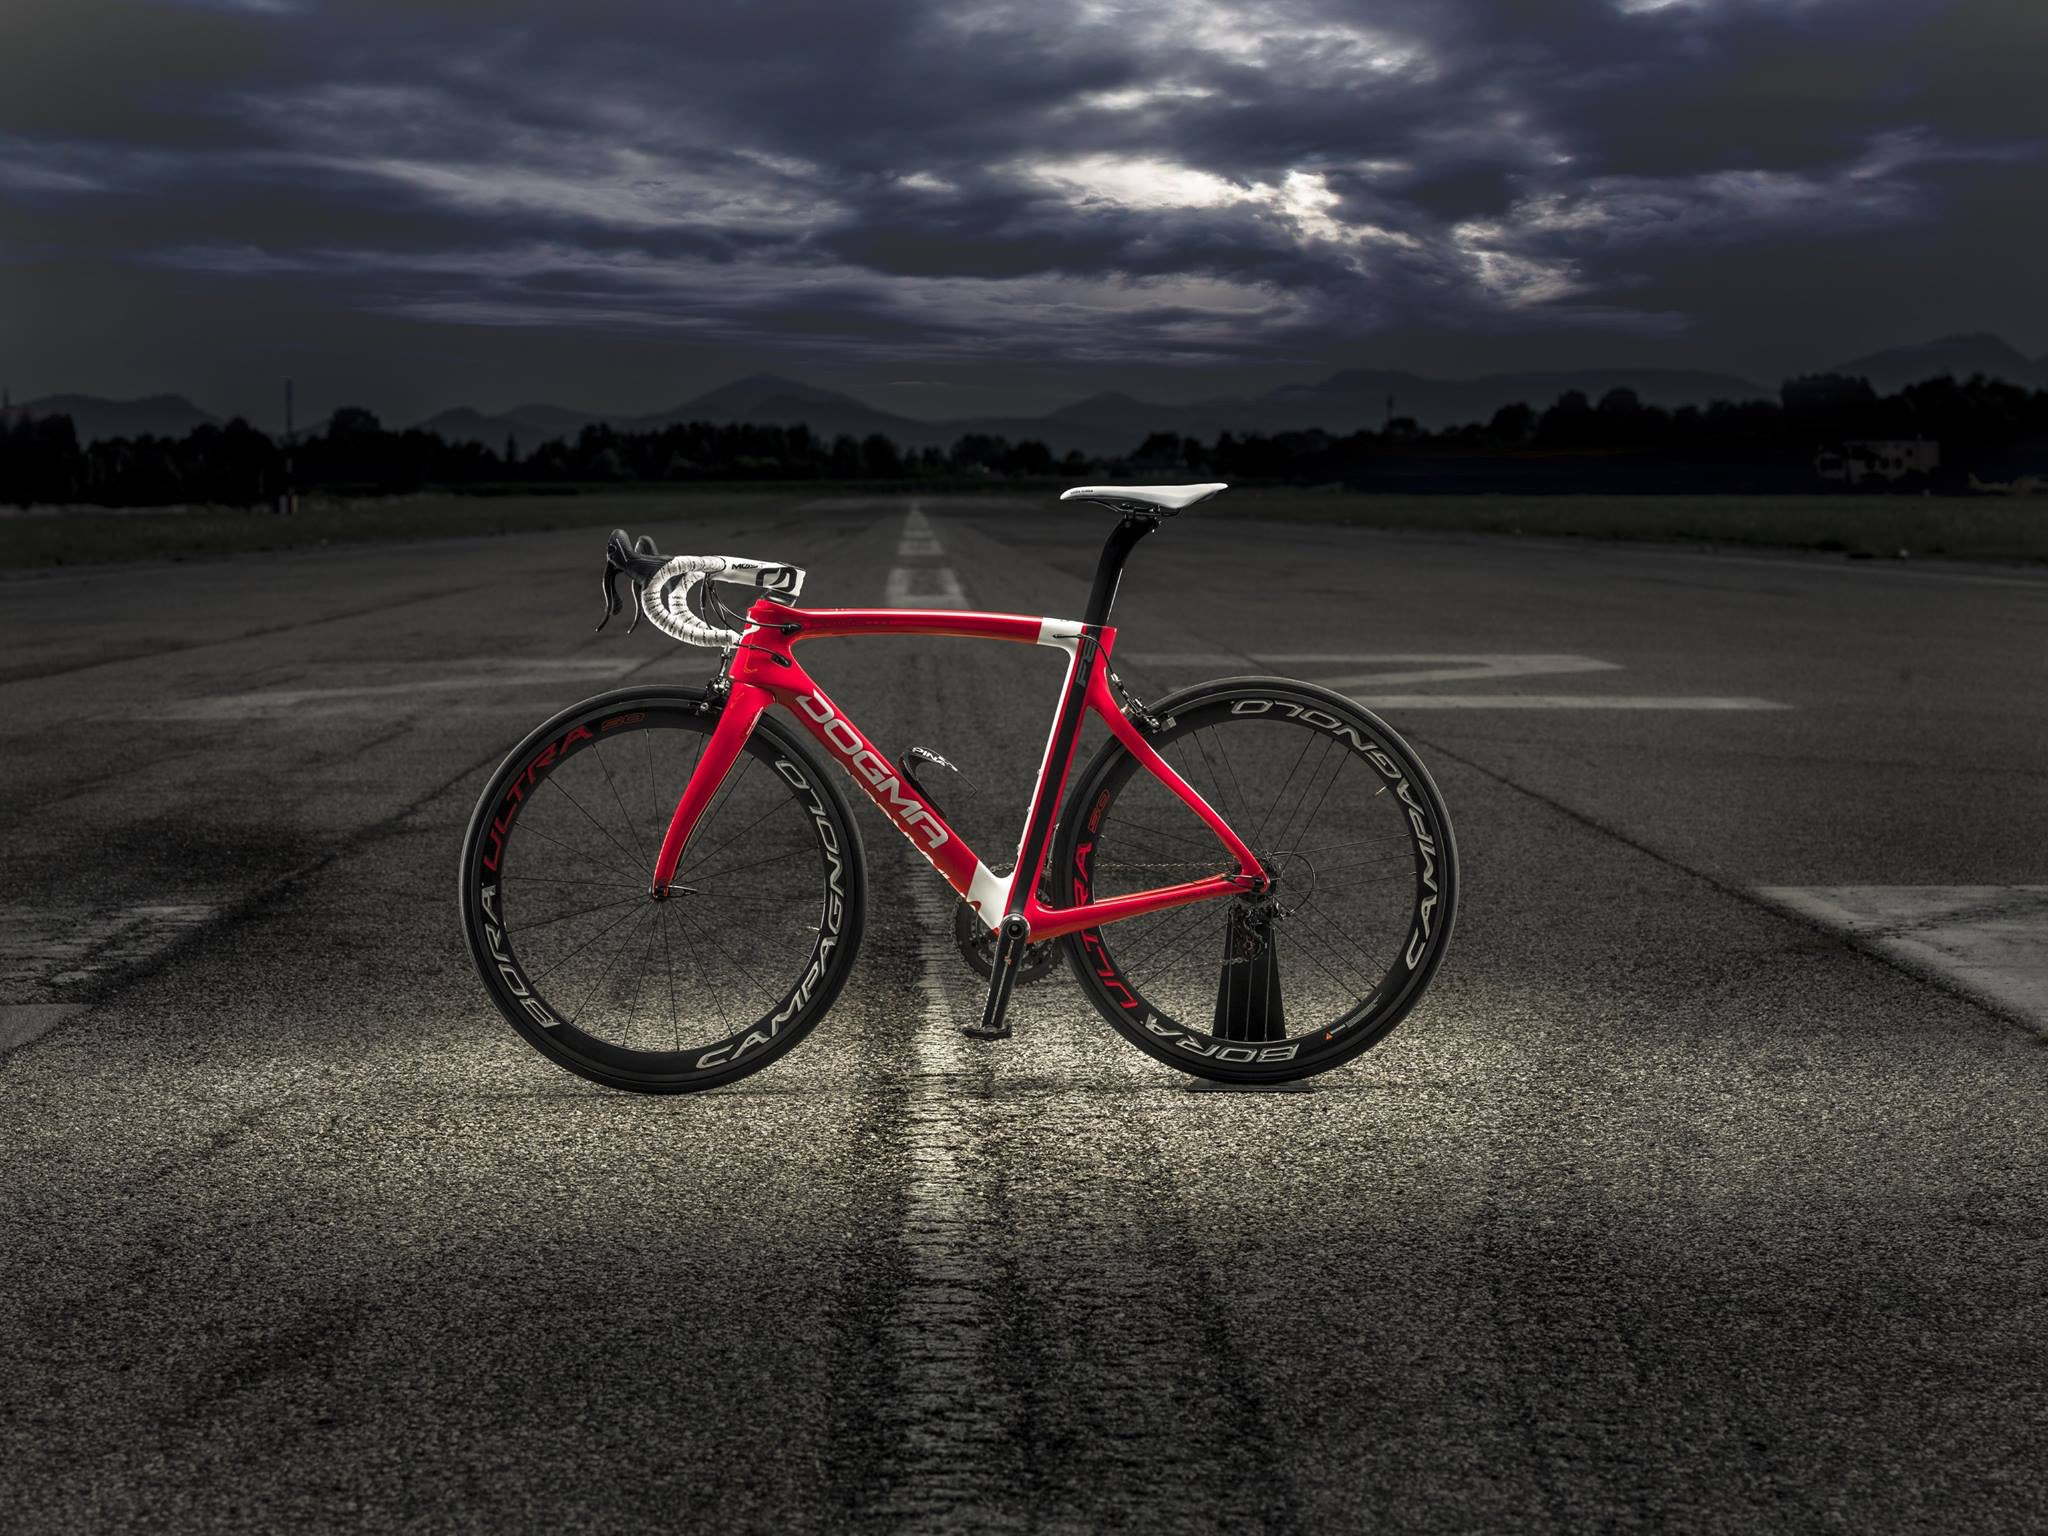 The investment arm of LVMH, L Catterton Europe, has acquired a majority stake in bicycle maker Pinarello   Source: Pinarello